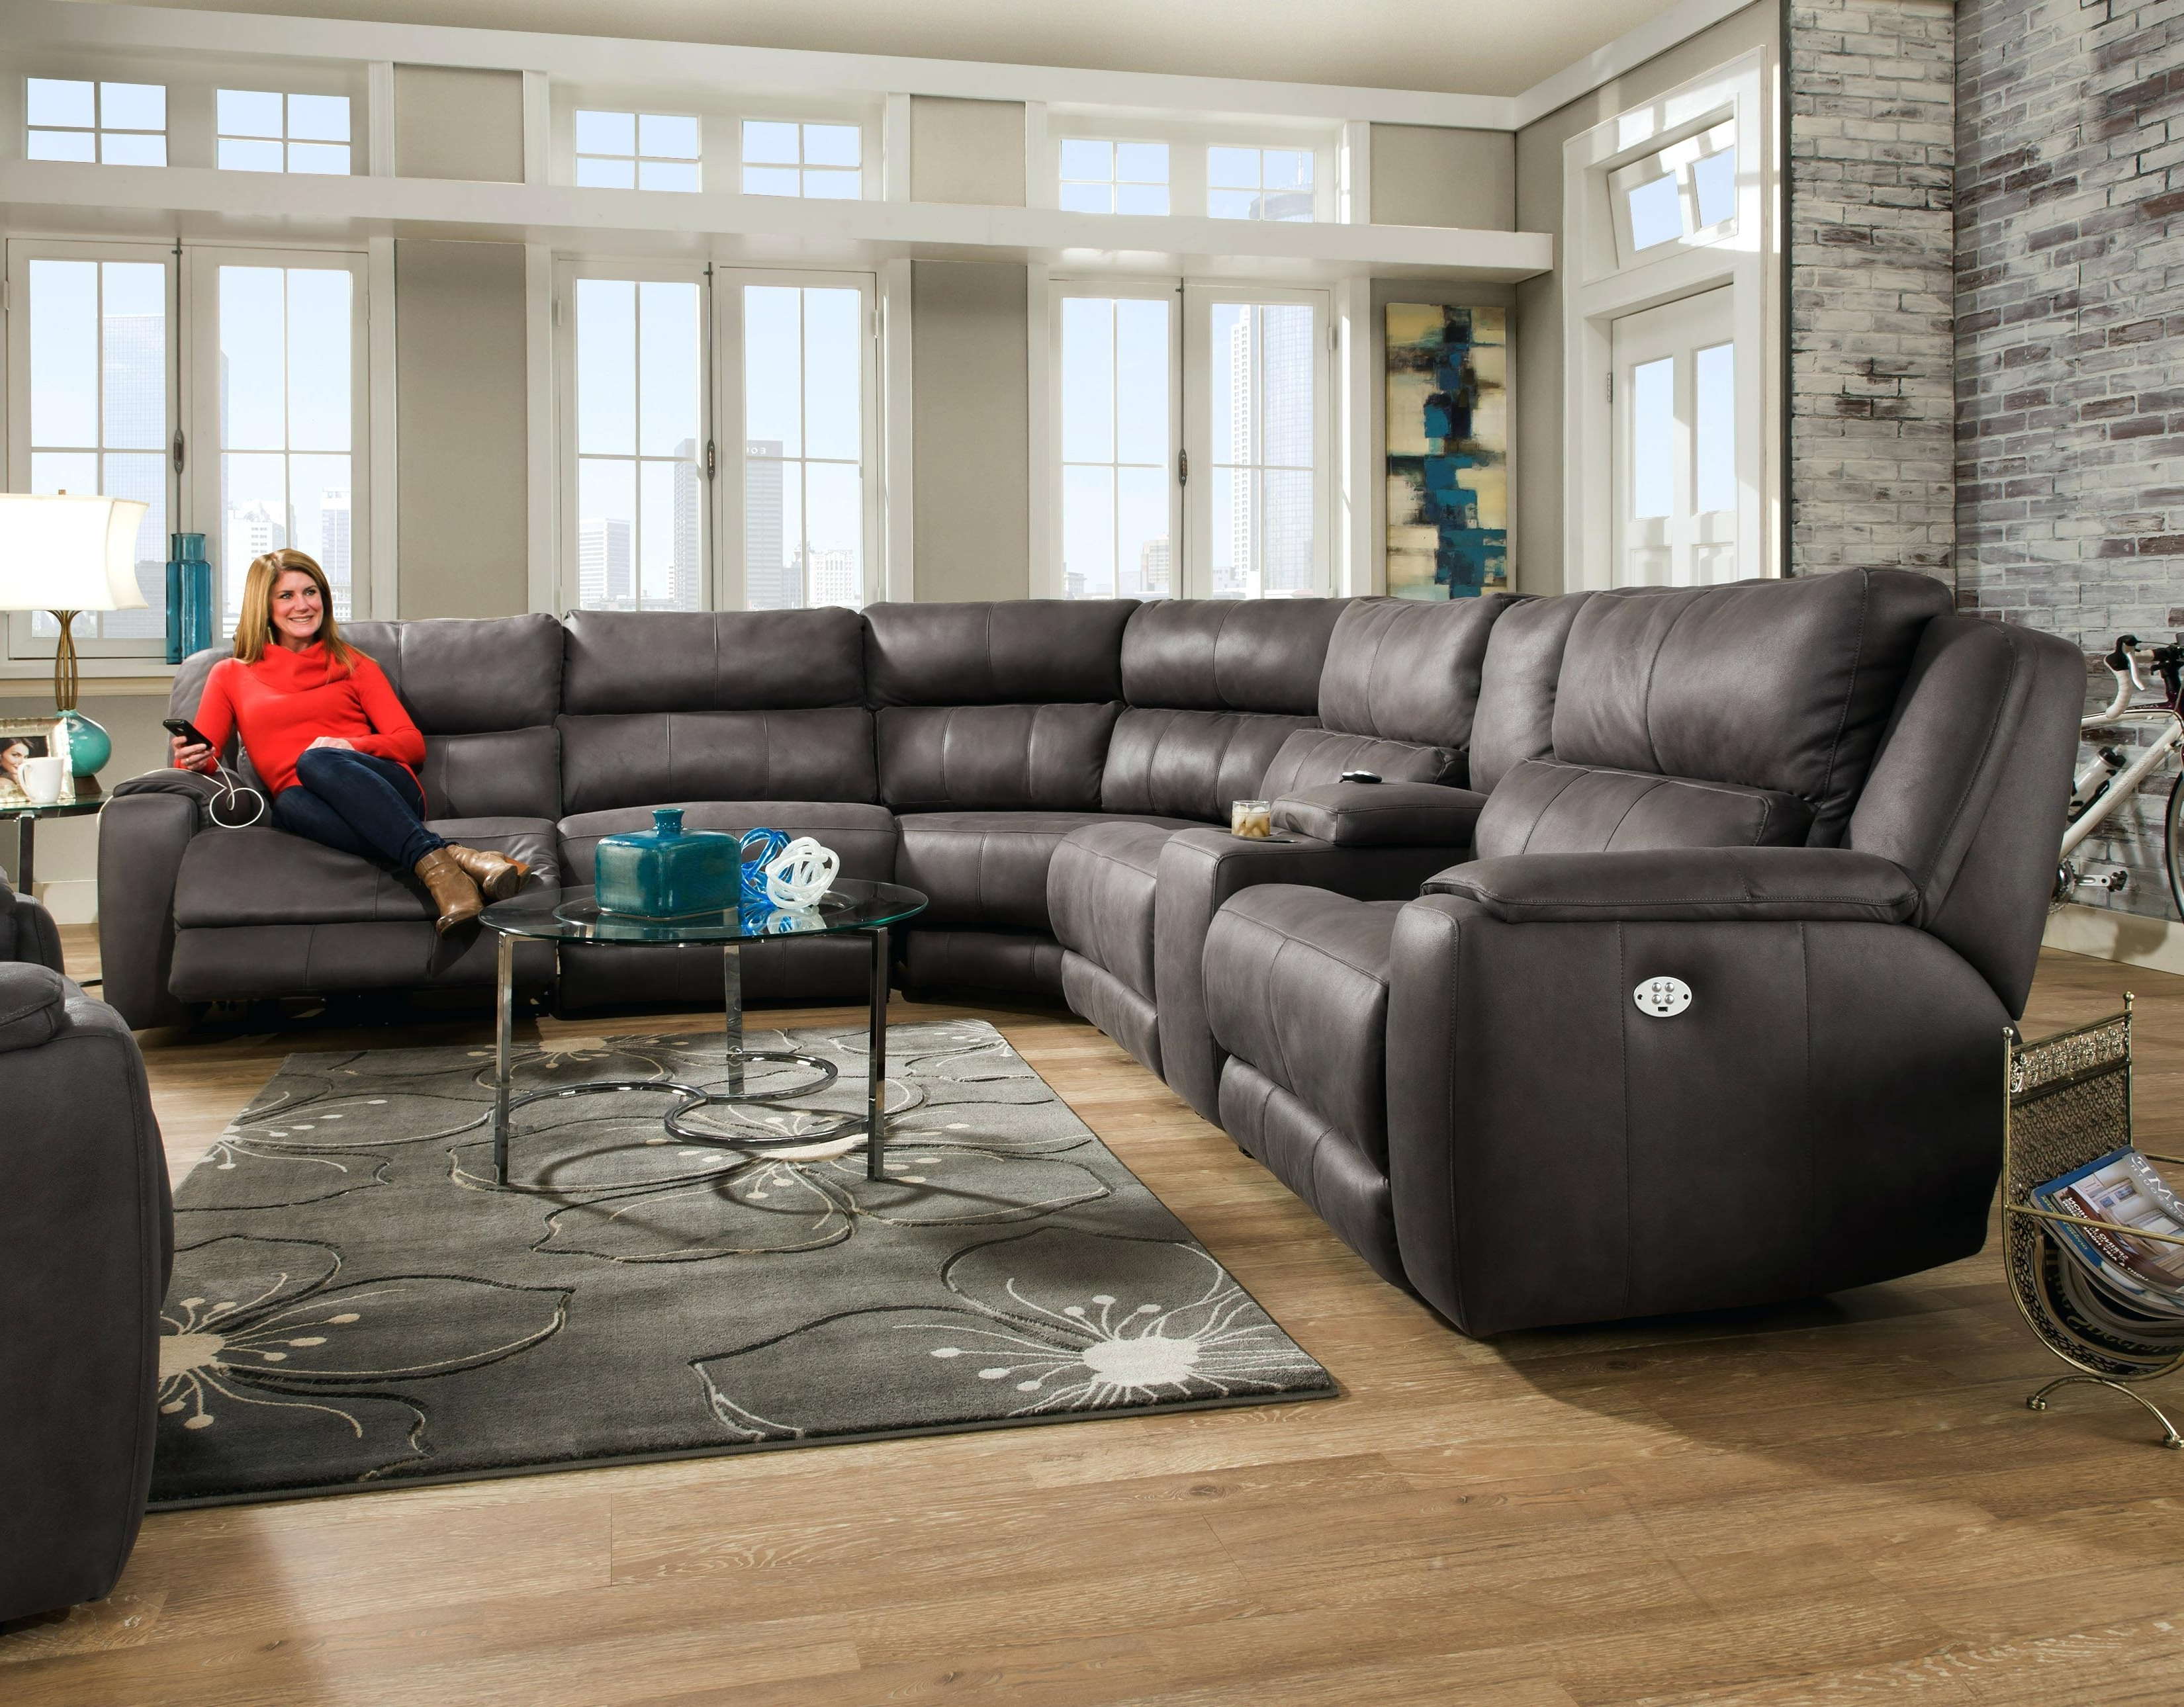 Sectional Sofa With Recliners Recliner Repair Parts – Bikas In Latest Valdosta Ga Sectional Sofas (View 16 of 20)